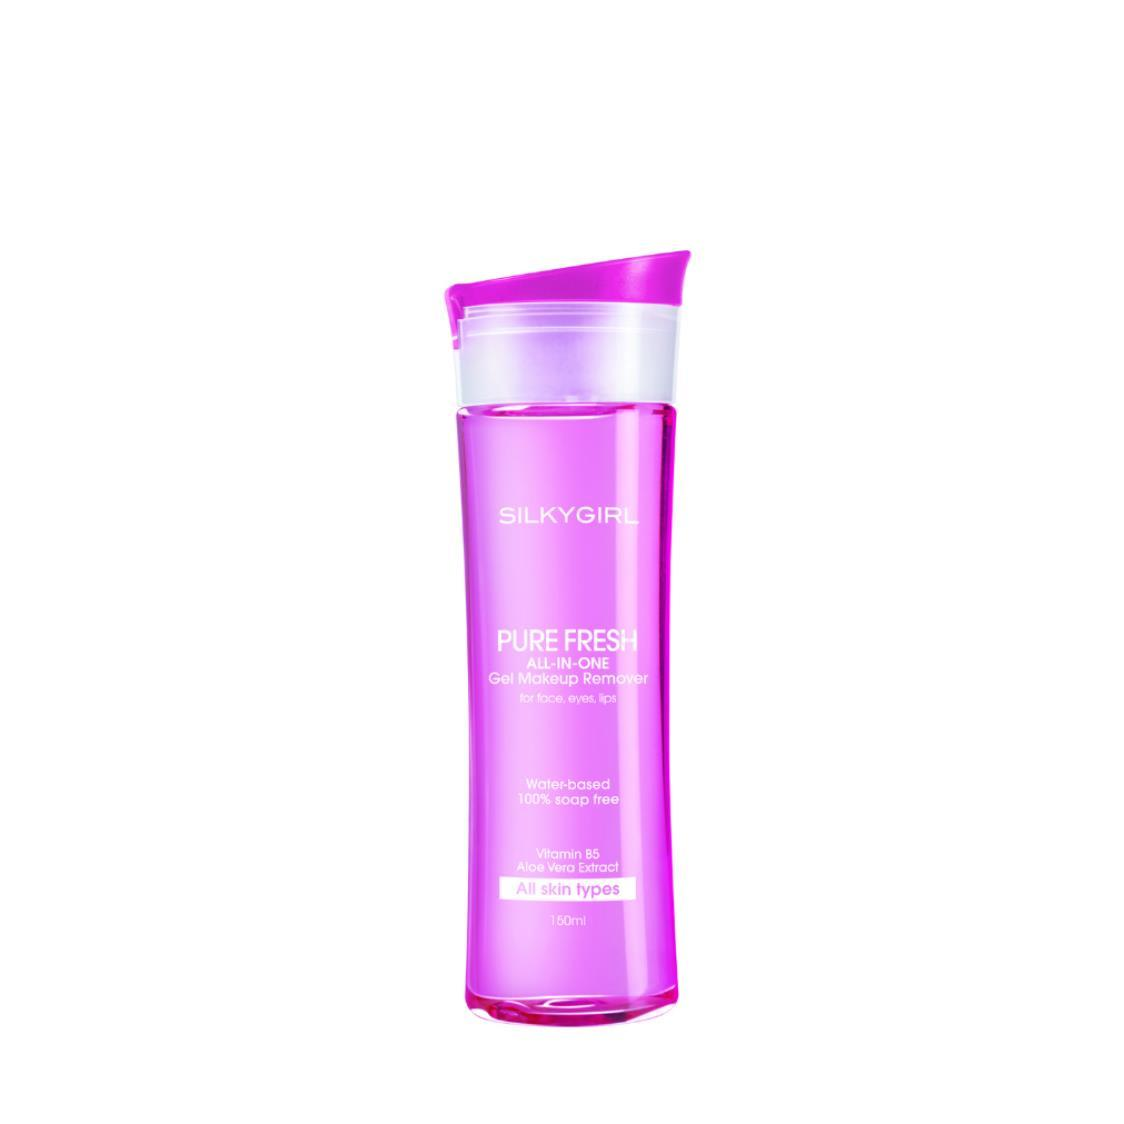 Silkygirl Pure Fresh Gel Makeup Remover